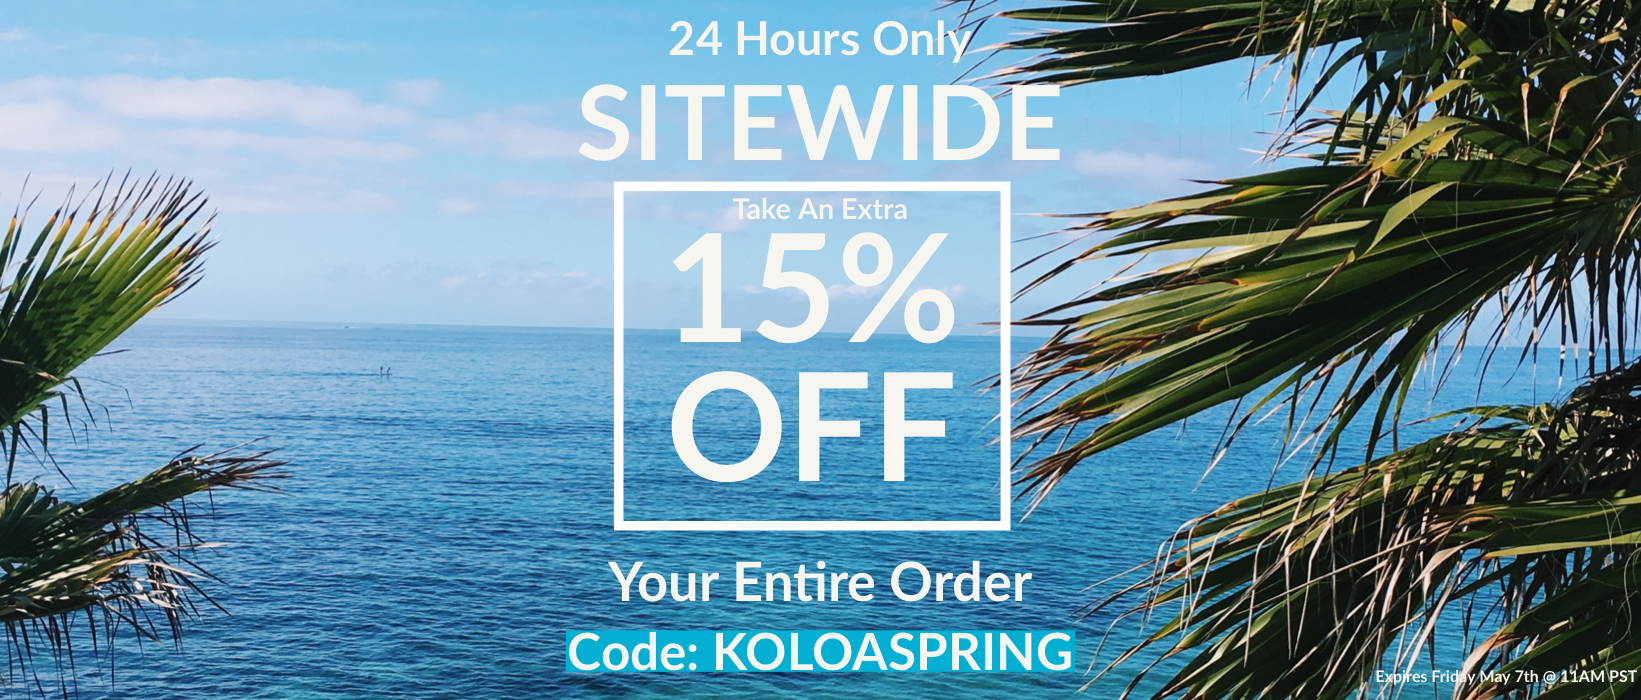 24 Hours Only... Sitewide... Take An Extra 15% Off Your Entire Order... Code: KOLOASPRING